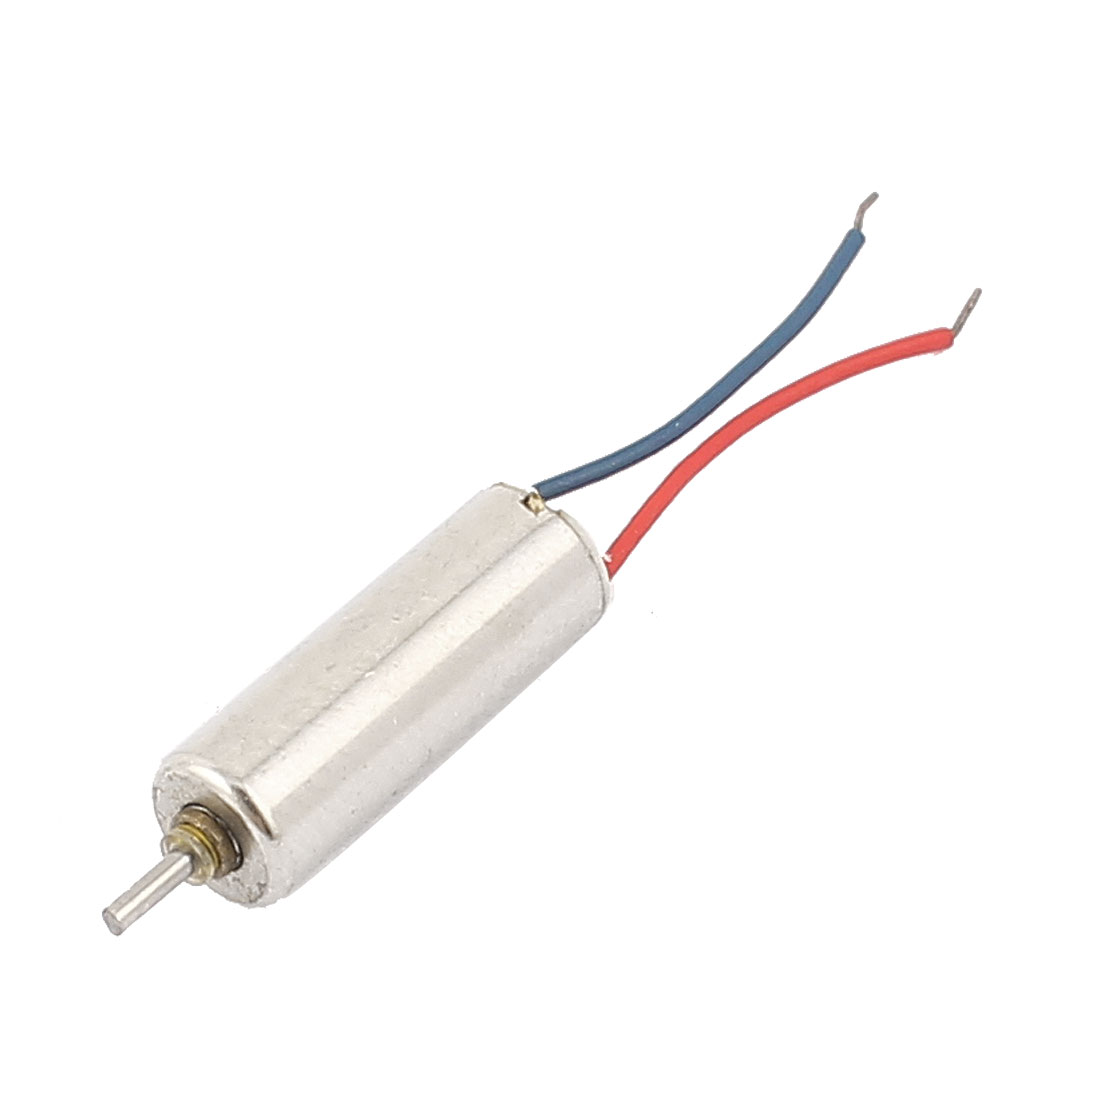 Uxcell Electric Mini Coreless Motor Body 6Mm For Rc Helicopter Toy . | 11mm | 12mm | 14mm | 15mm(China (Mainland))